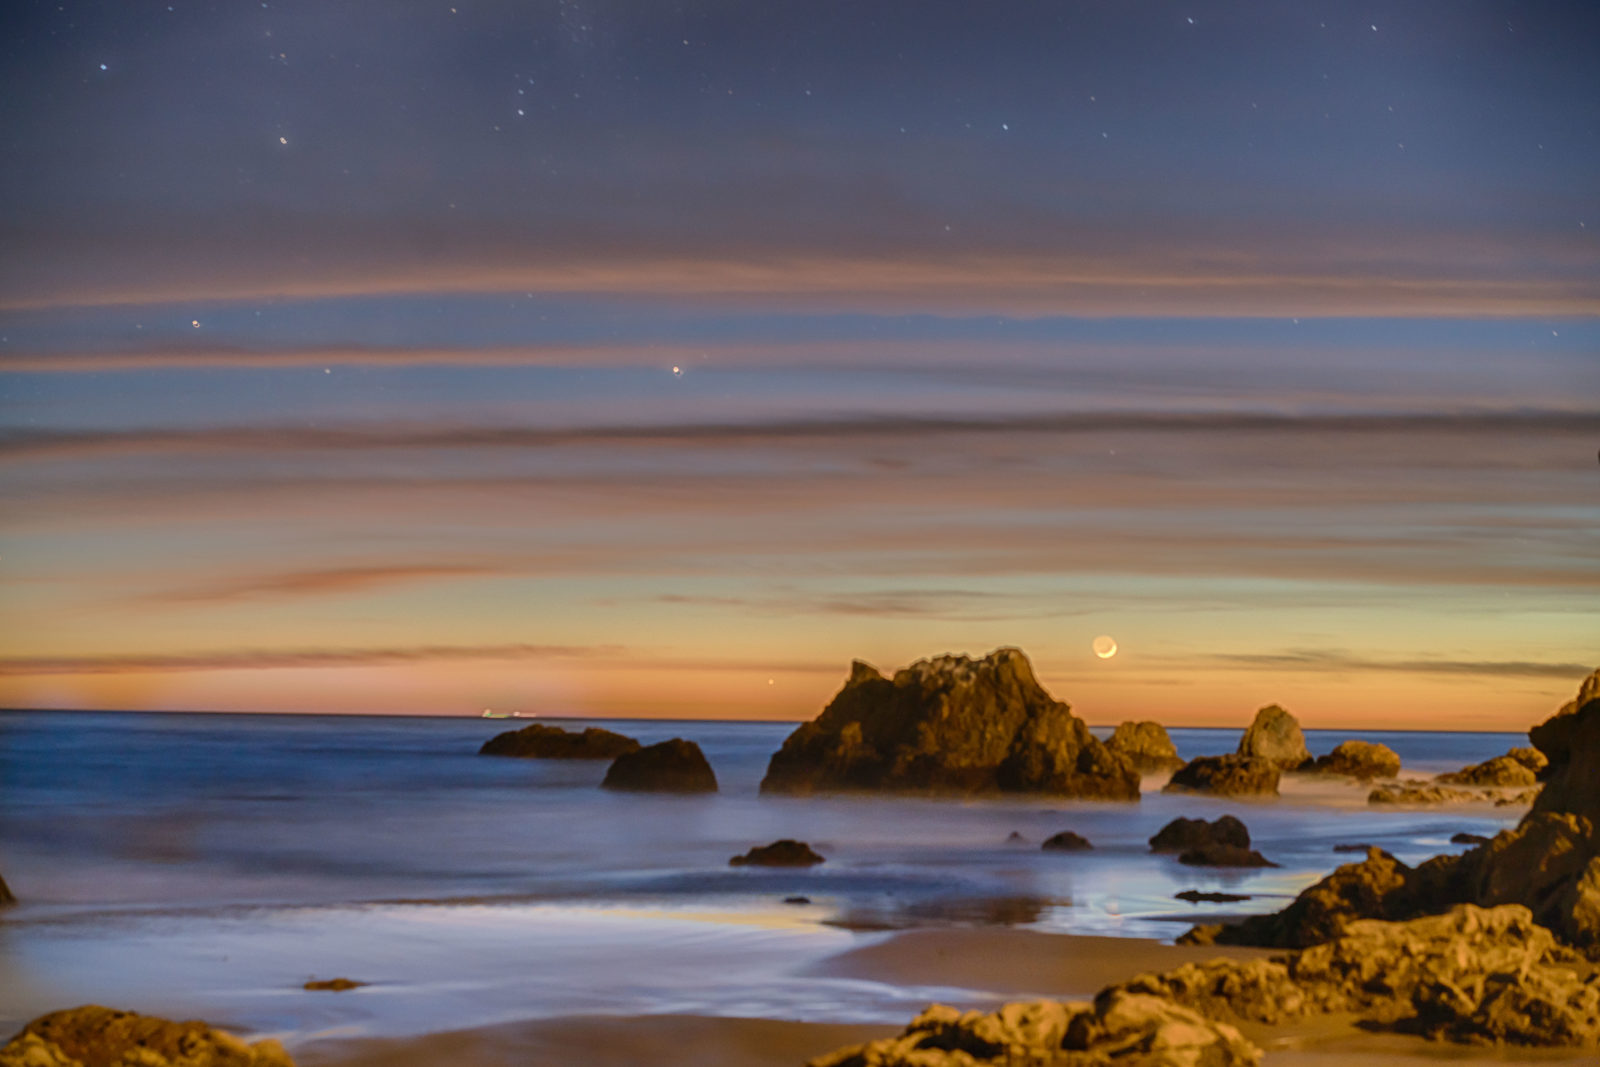 New Moon setting after Sunset at El Matador State Beach